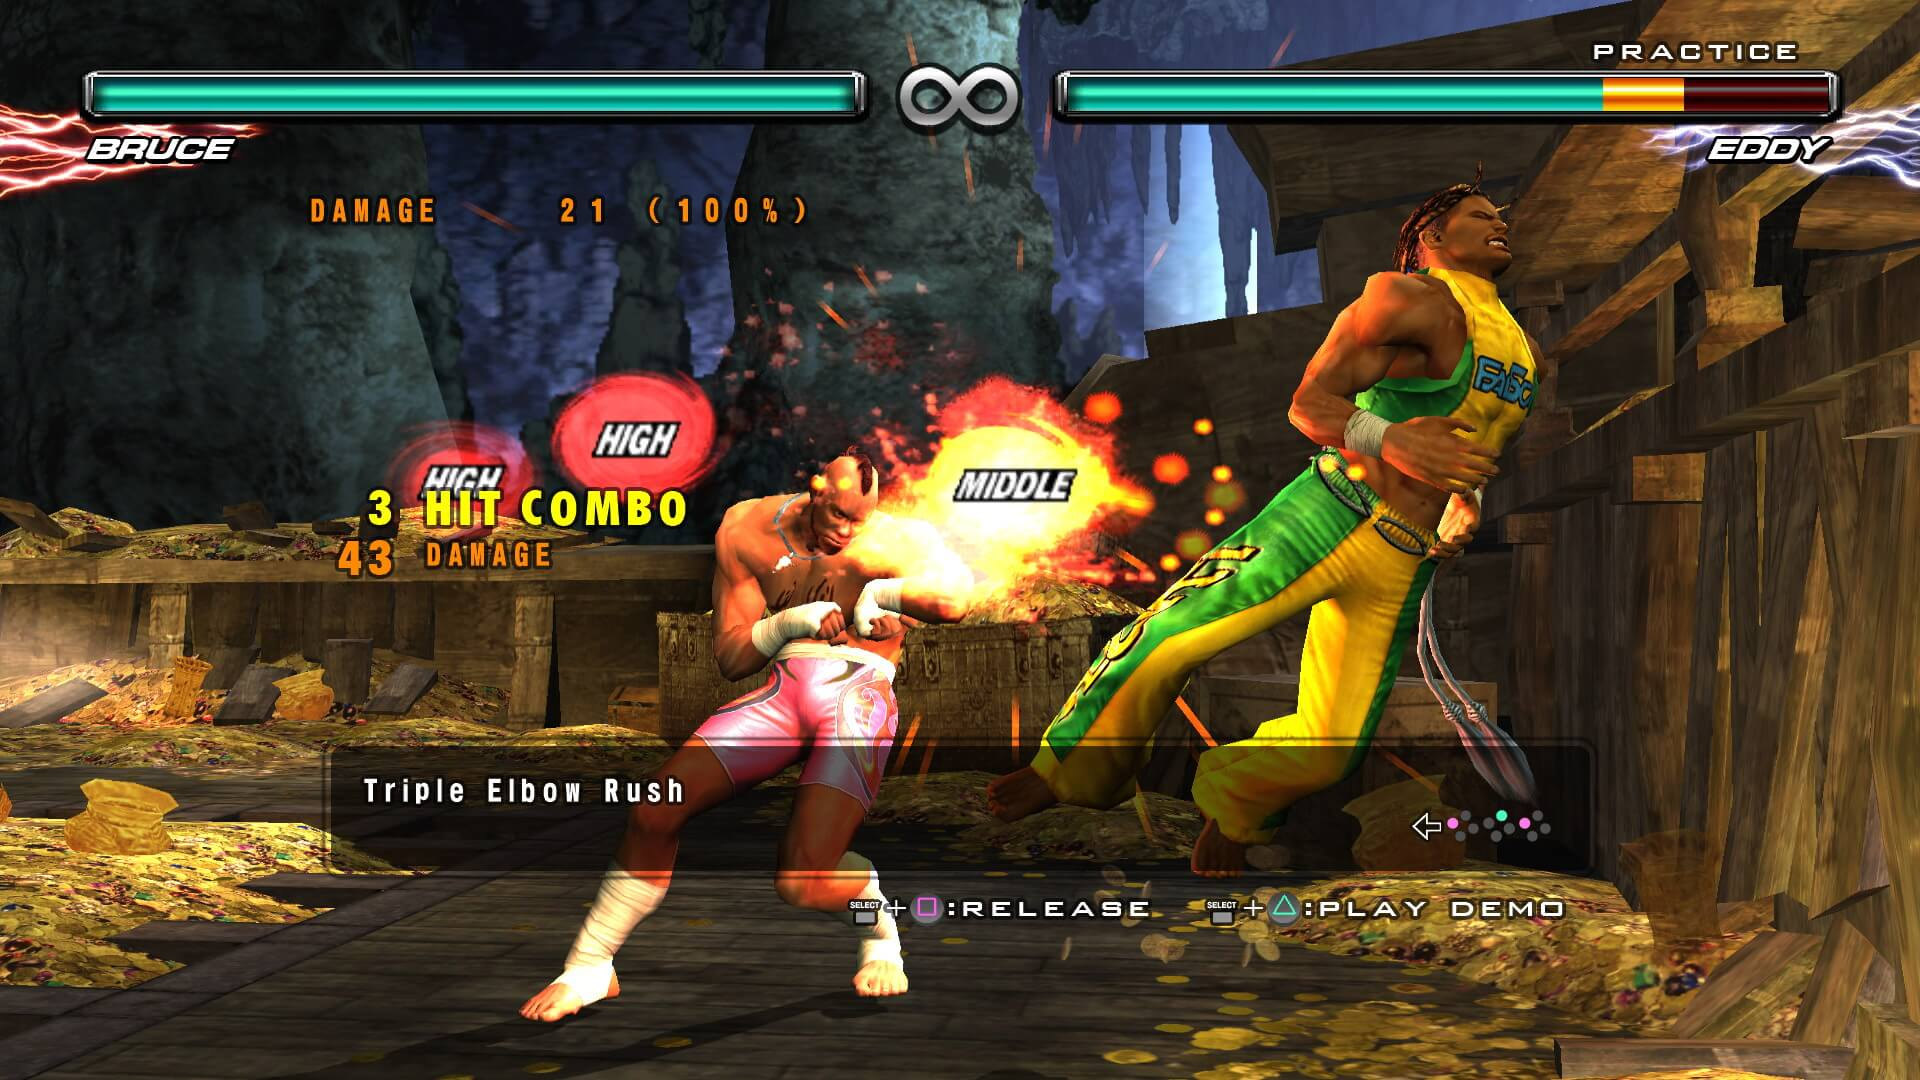 tekken 3 pc game download exe